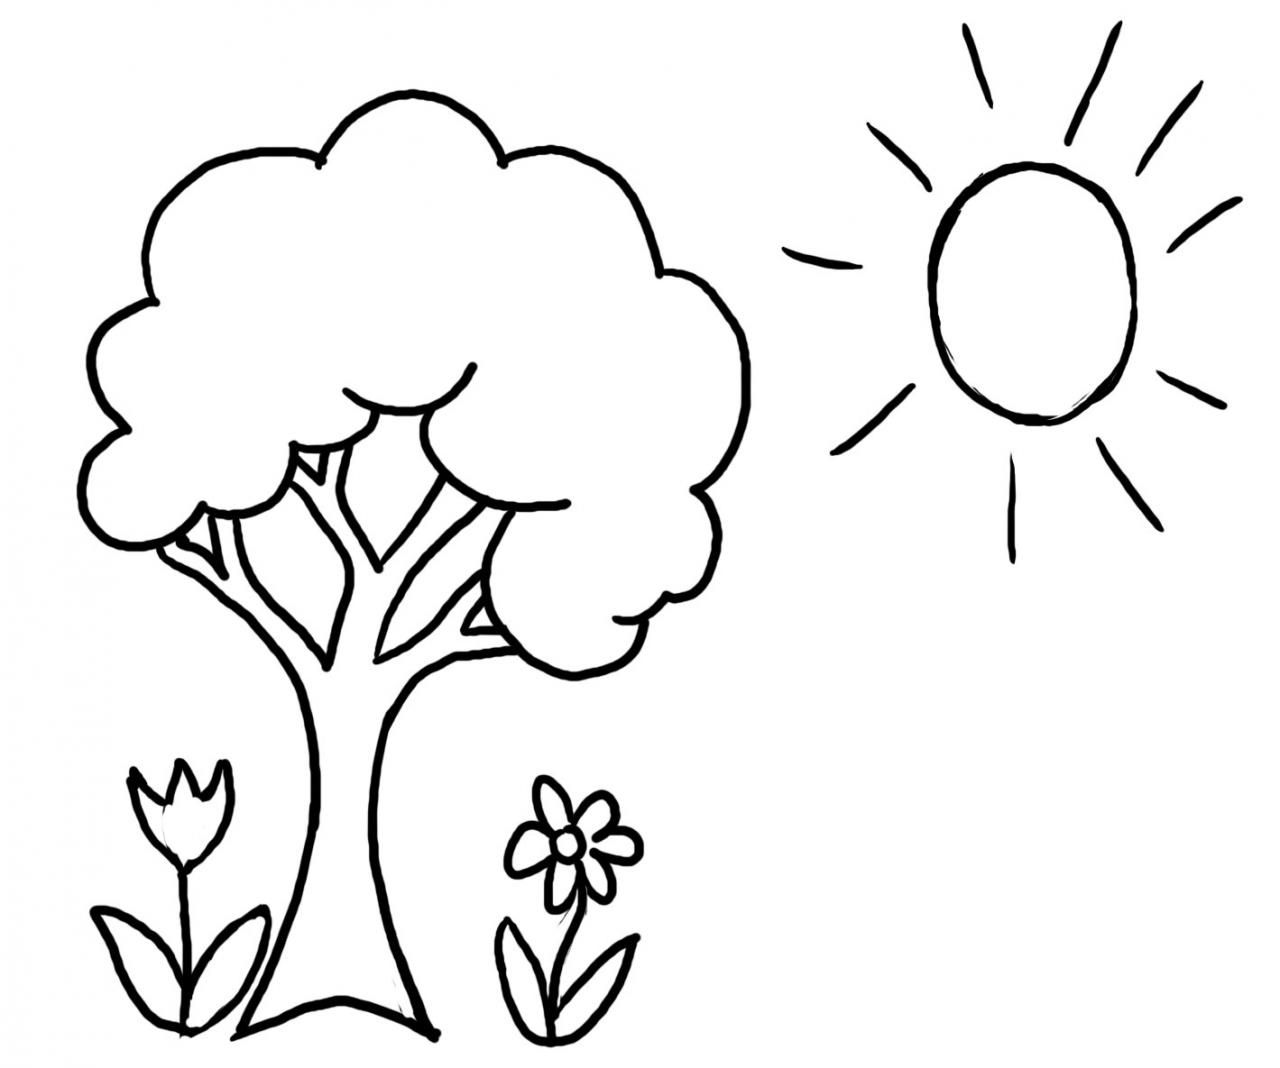 Spring Tree Coloring Pages Printable Coloring Page For Kids | Kids ...